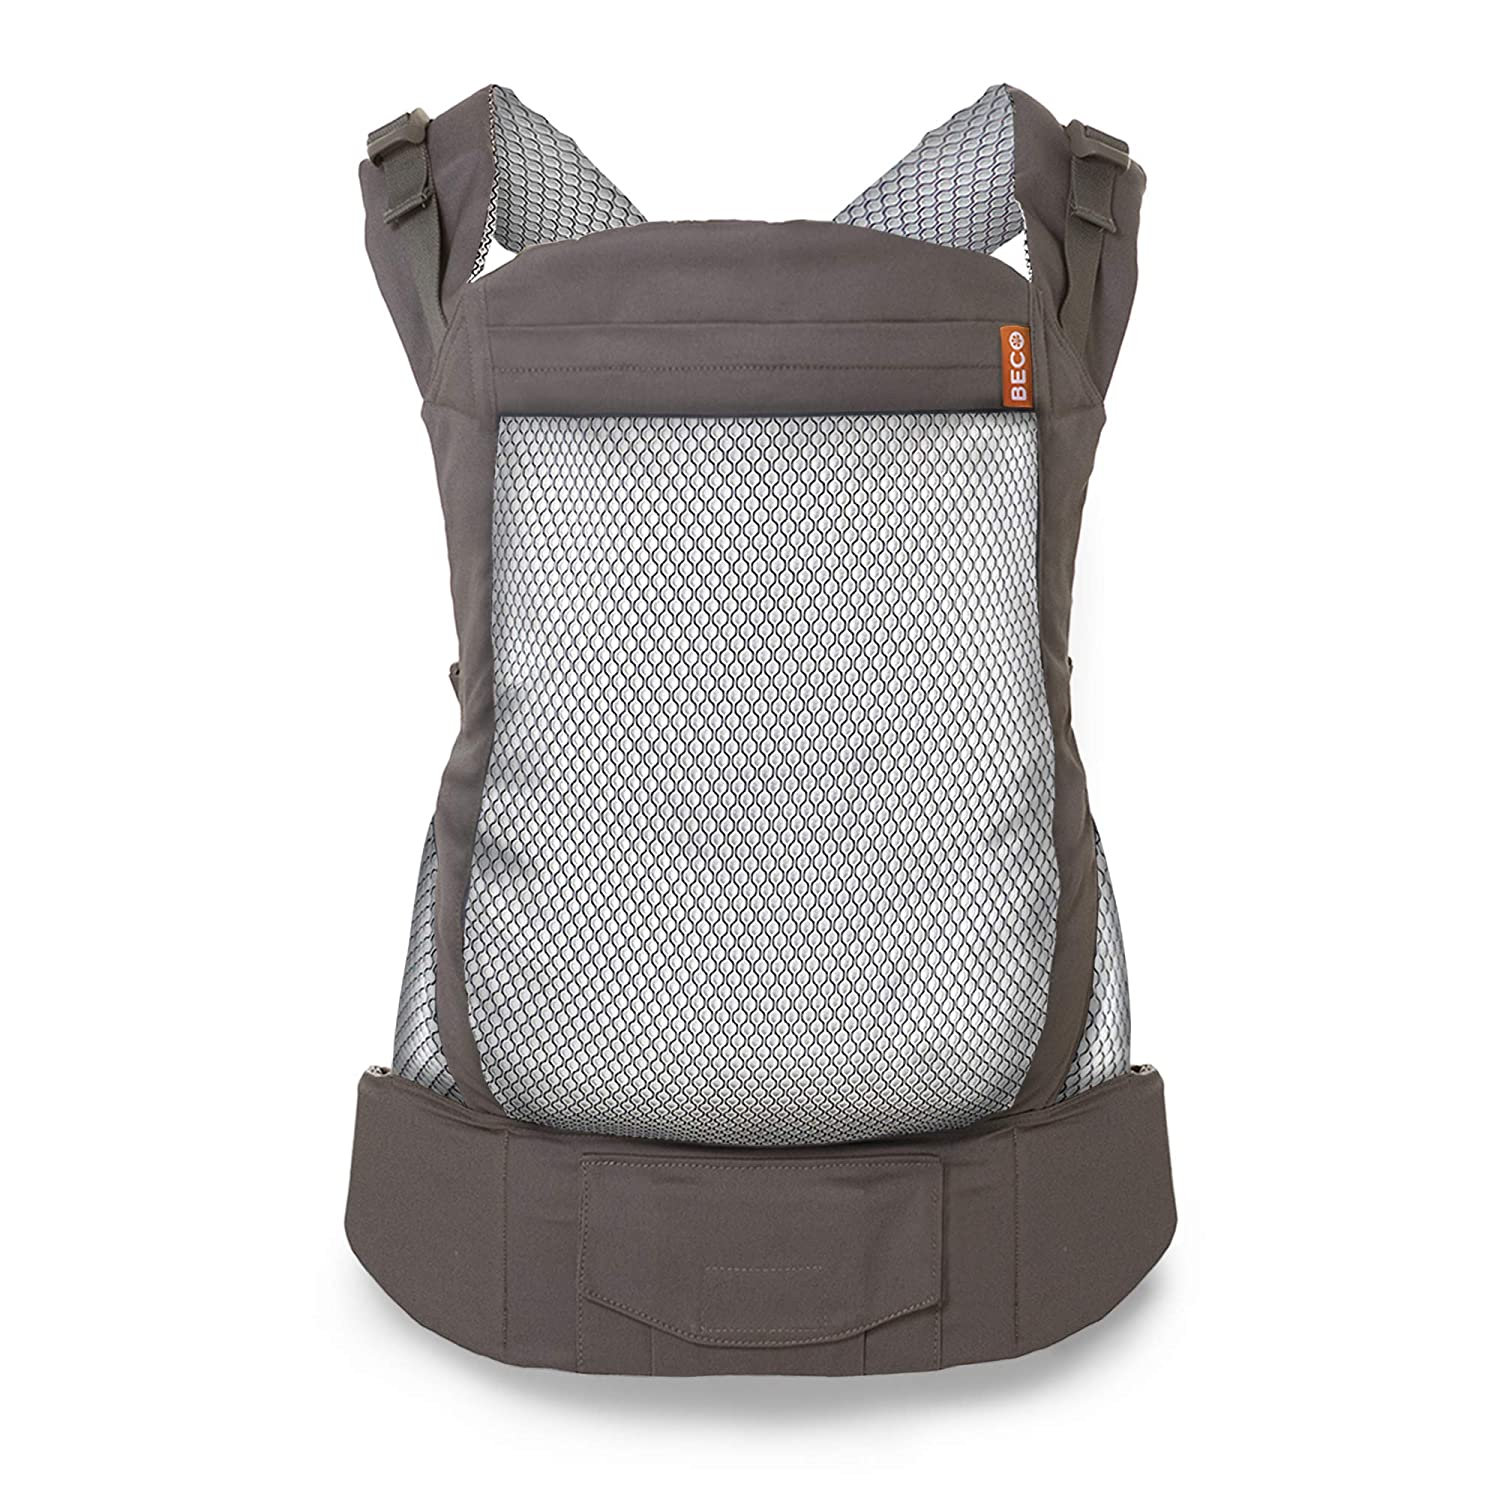 Beco Toddler Carrier – Backpack Style Baby Carrier for Children from 20 up to 60 lbs, Designed to Hold Toddlers with Extra Wide Seat (Cool Dark Grey)